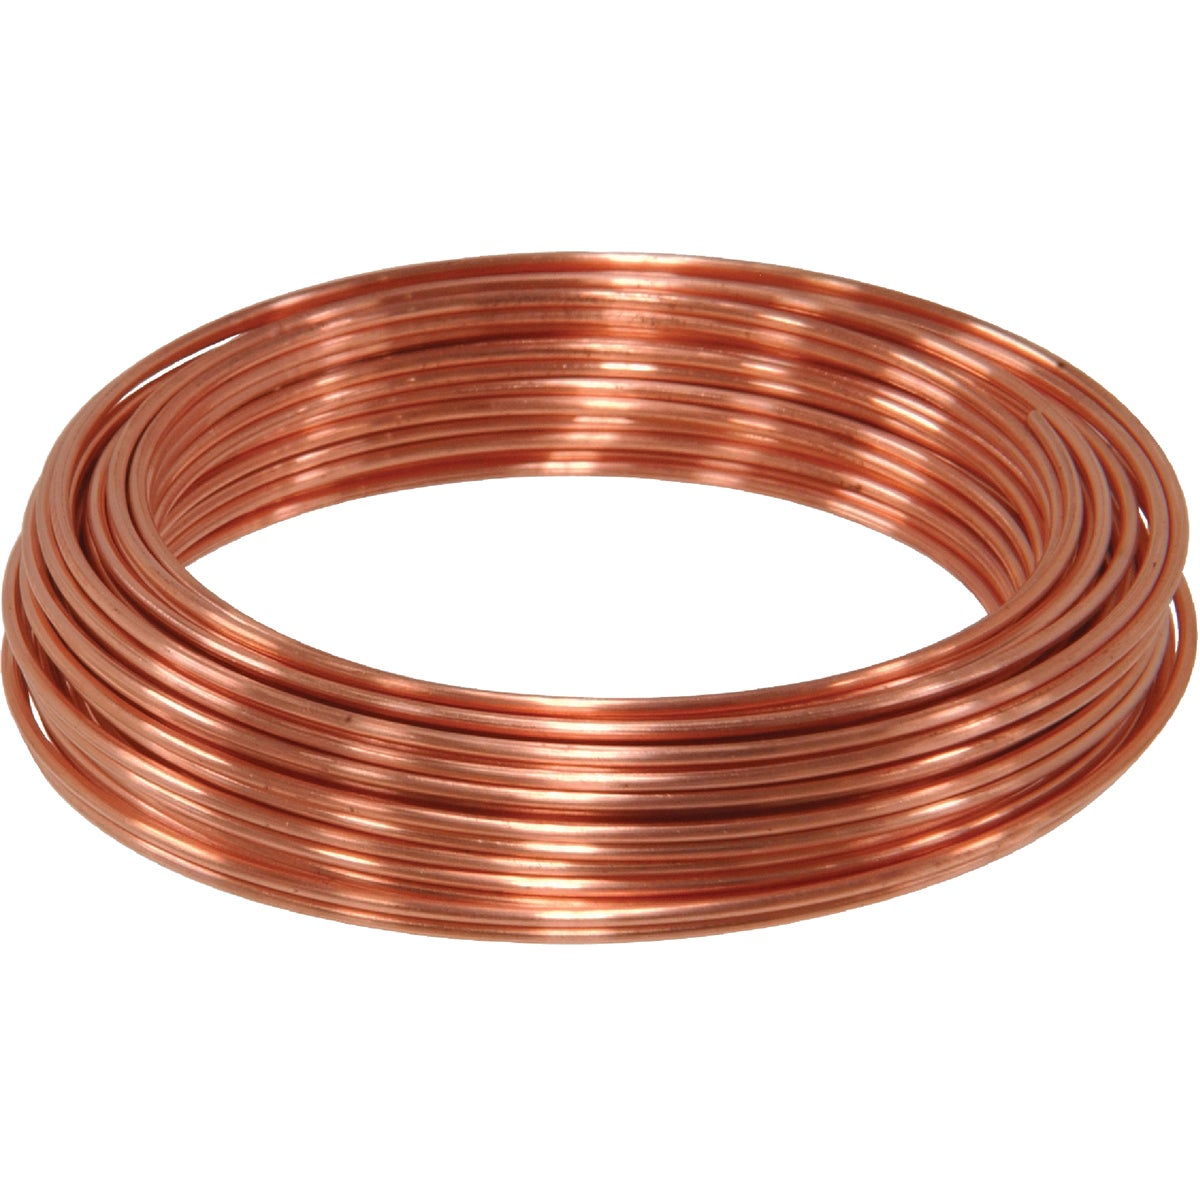 25' 18G COPPER WIRE